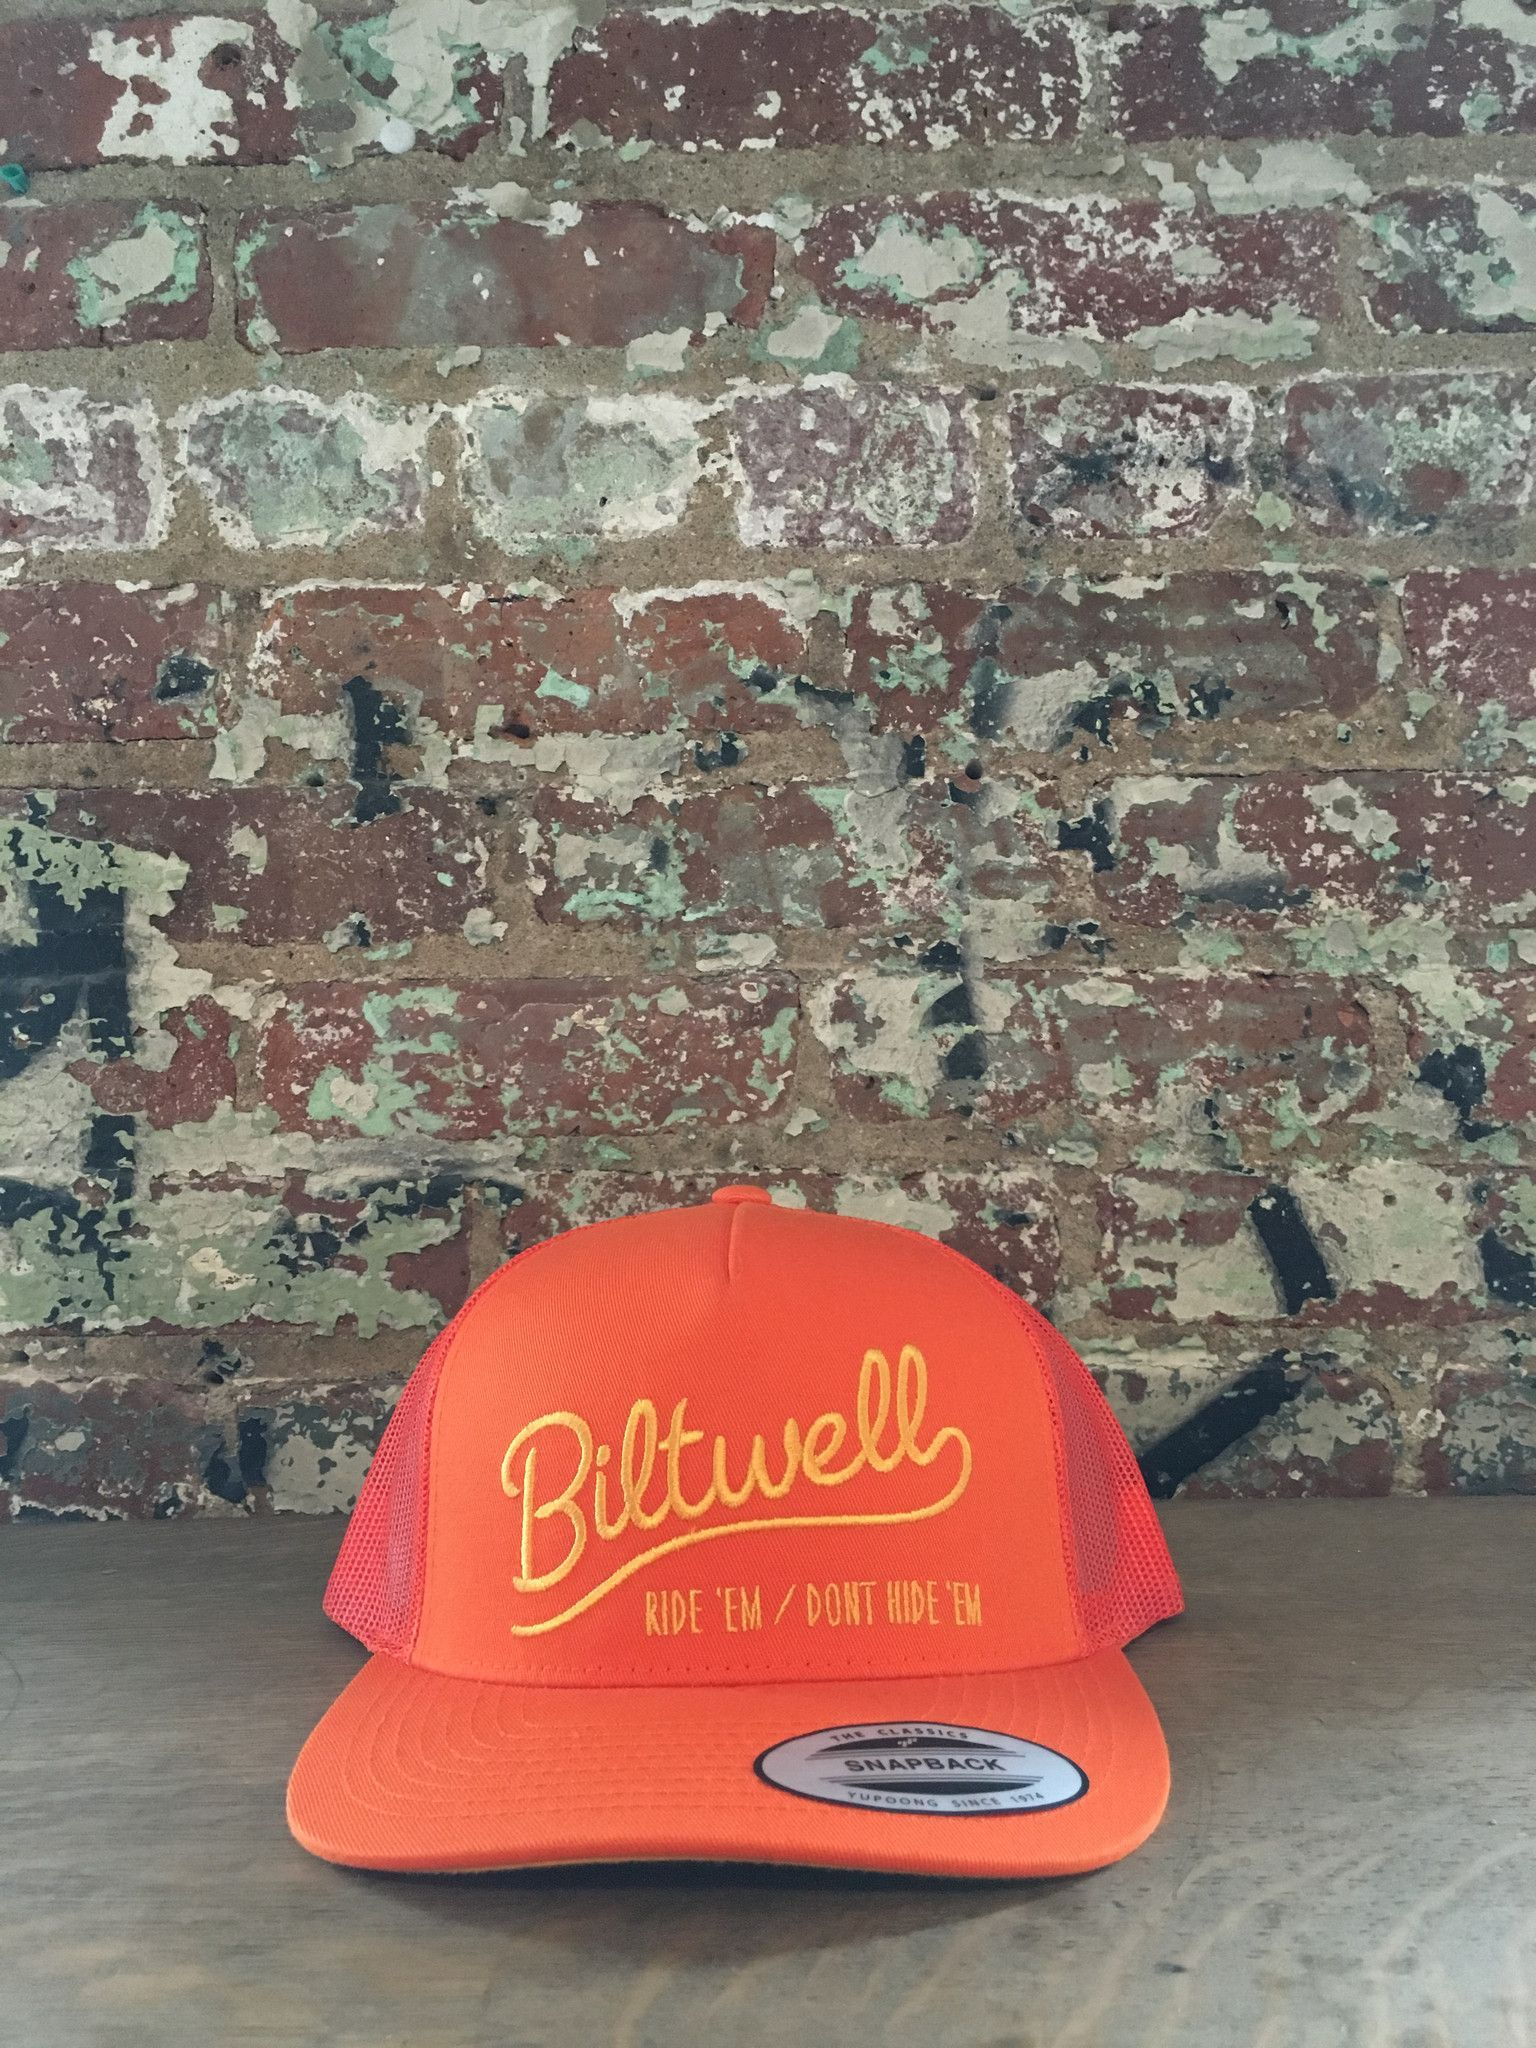 Biltwell Ride 'em Trucker Hat,Orange